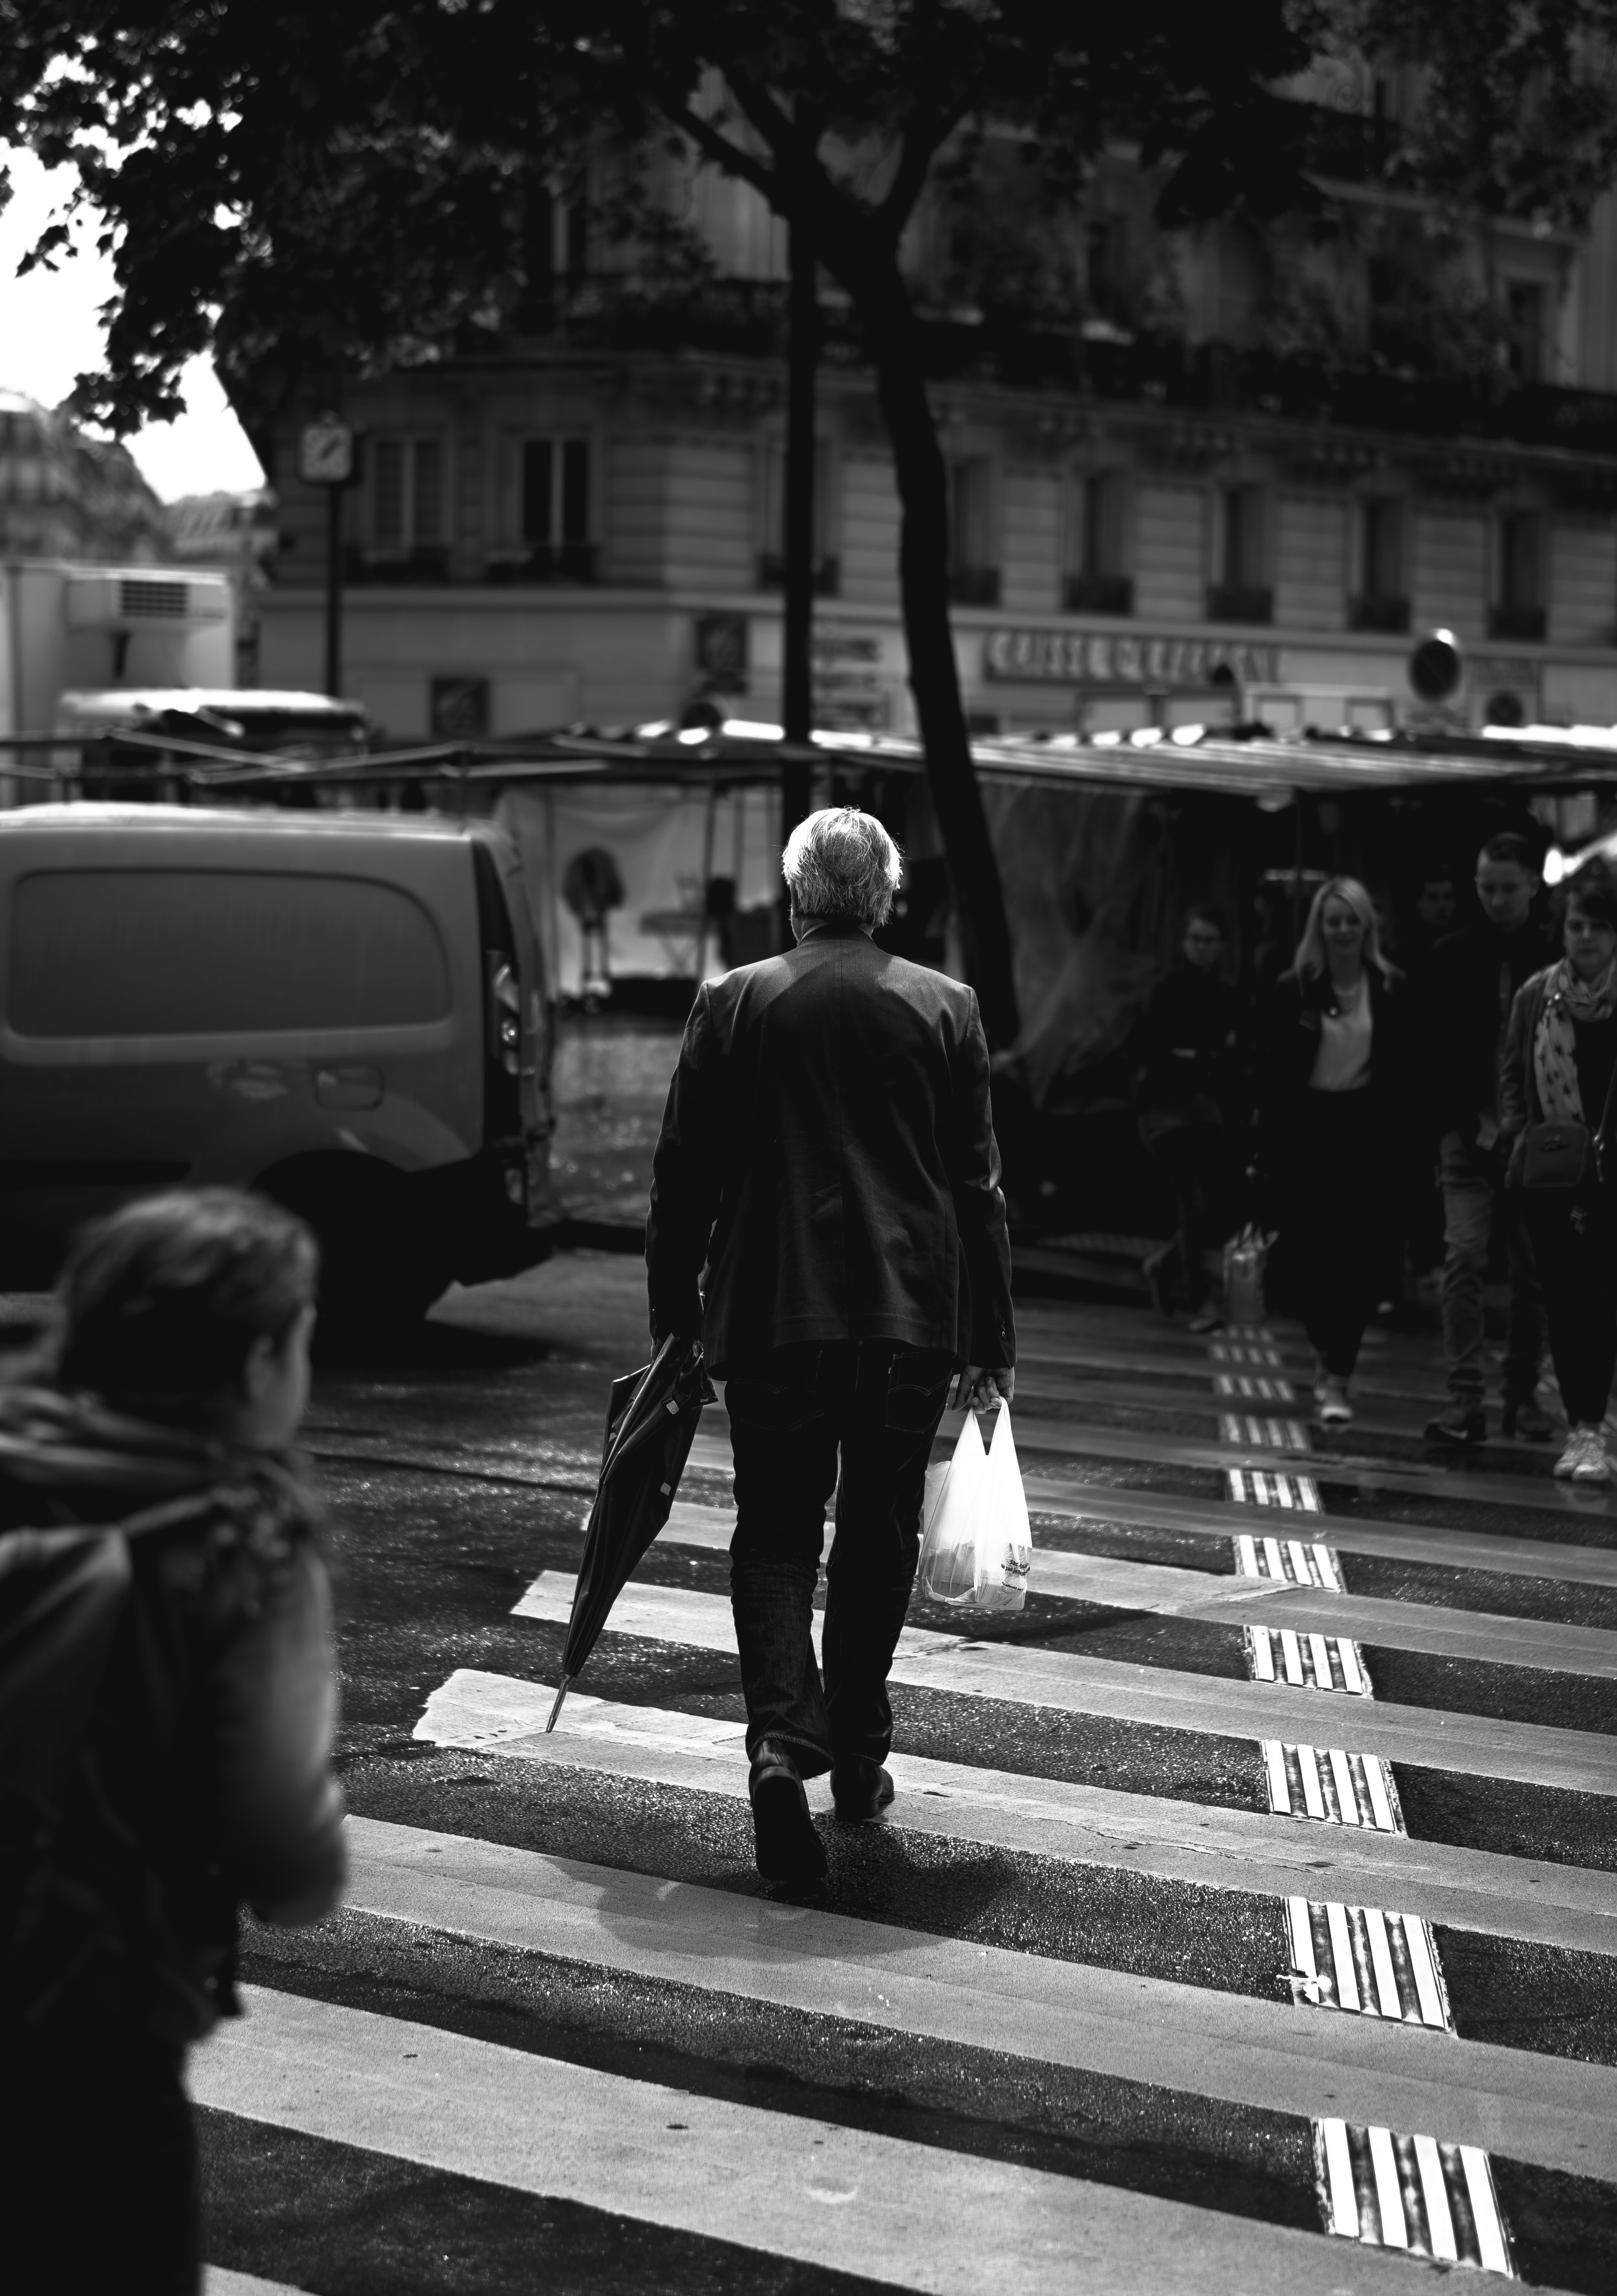 Man at Crossing (1 of 1).jpg